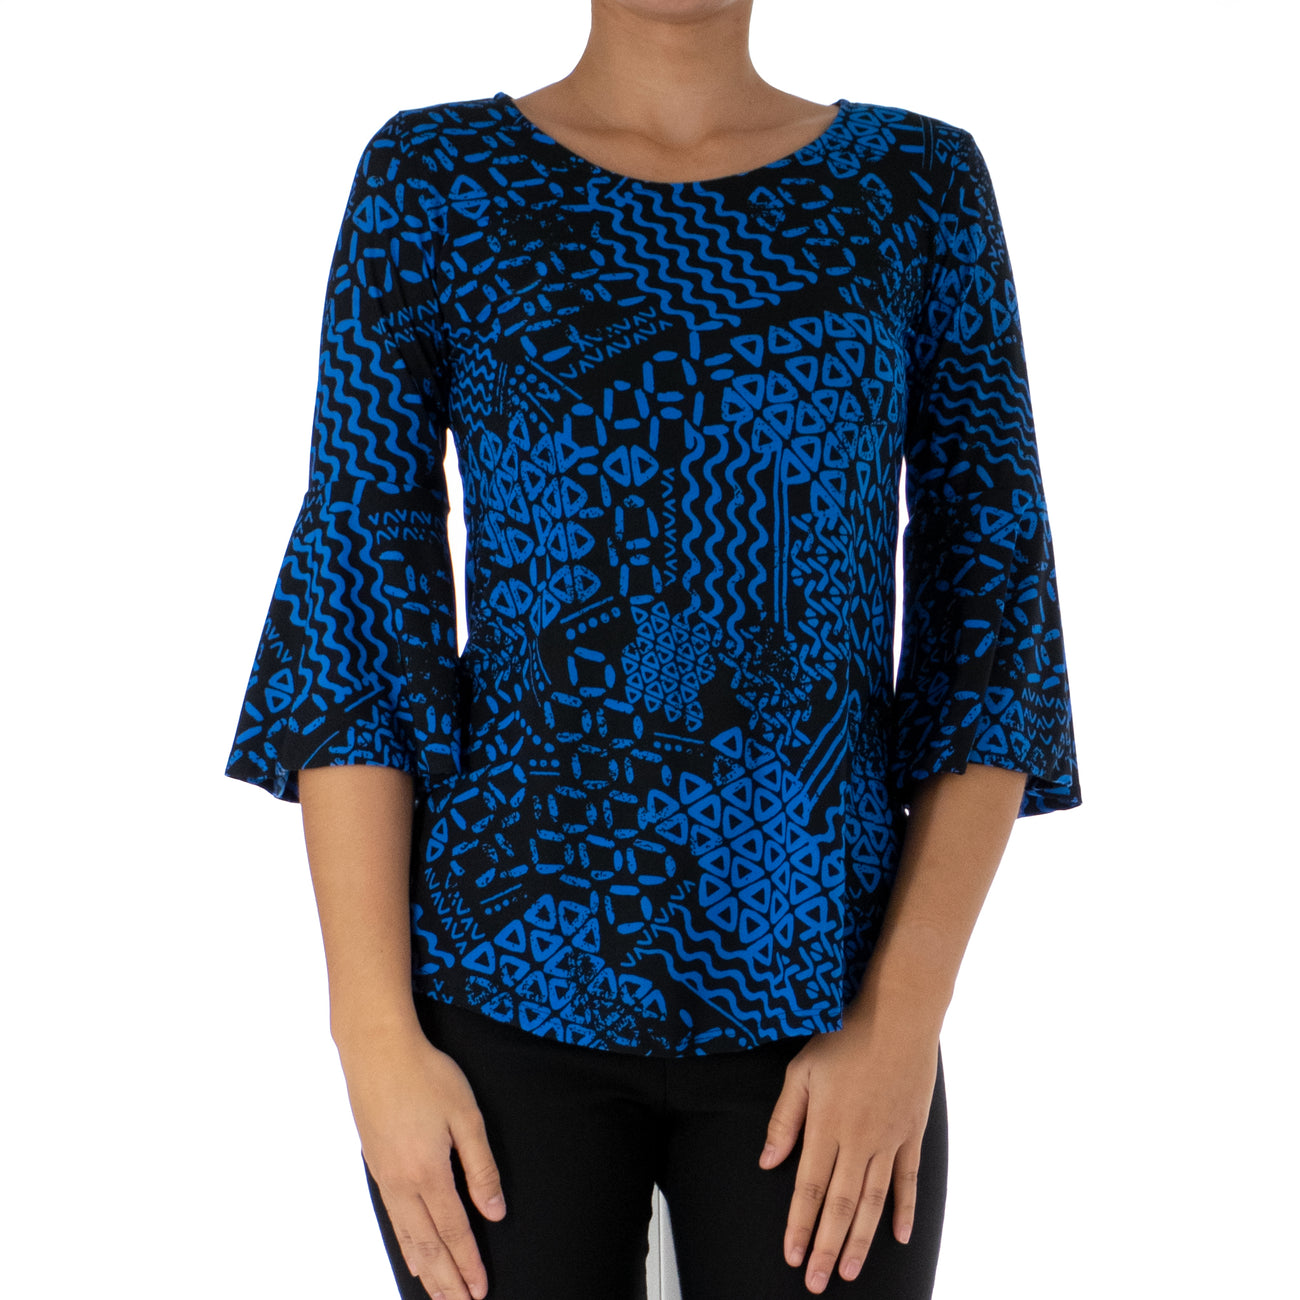 KAPA BELL SLEEVE TOP